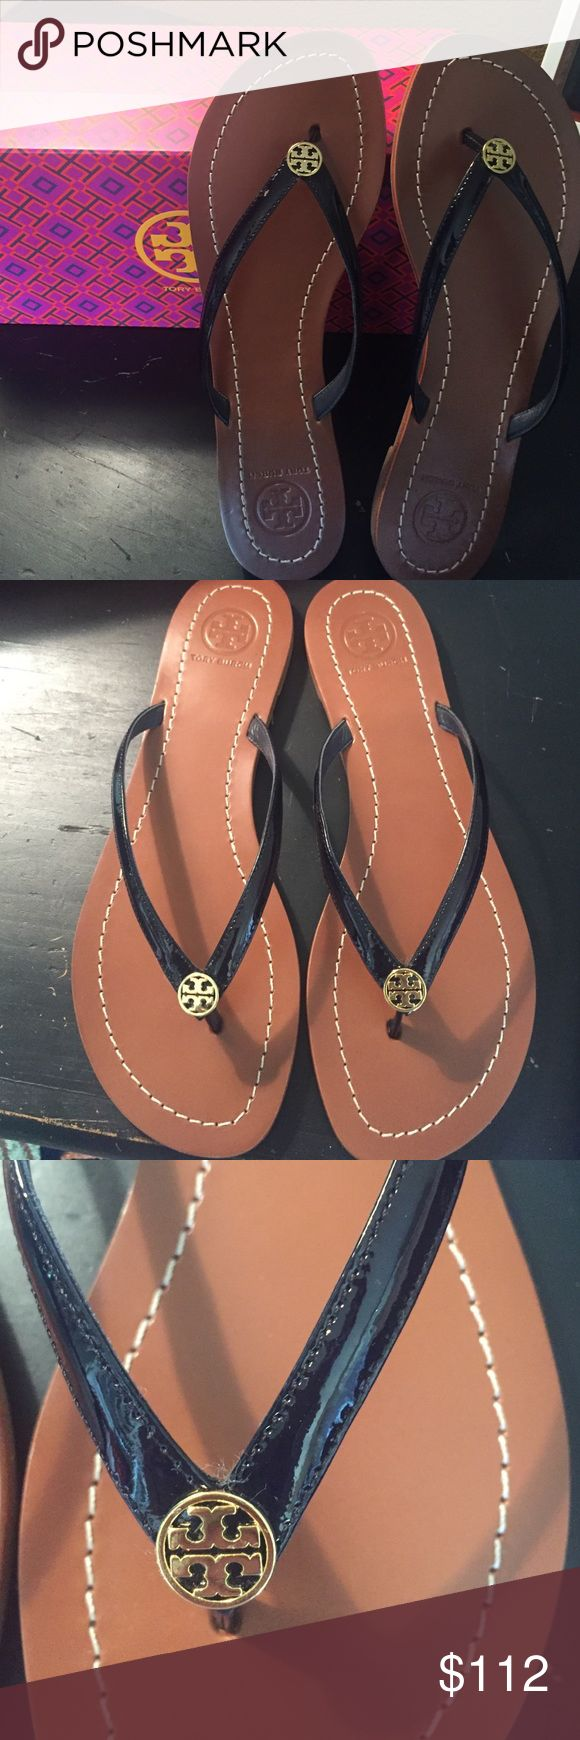 Tory Burch sandal Tory Burch Terra Thong sandal in bright navy. Still in box with dust bag. Tory Burch Shoes Sandals